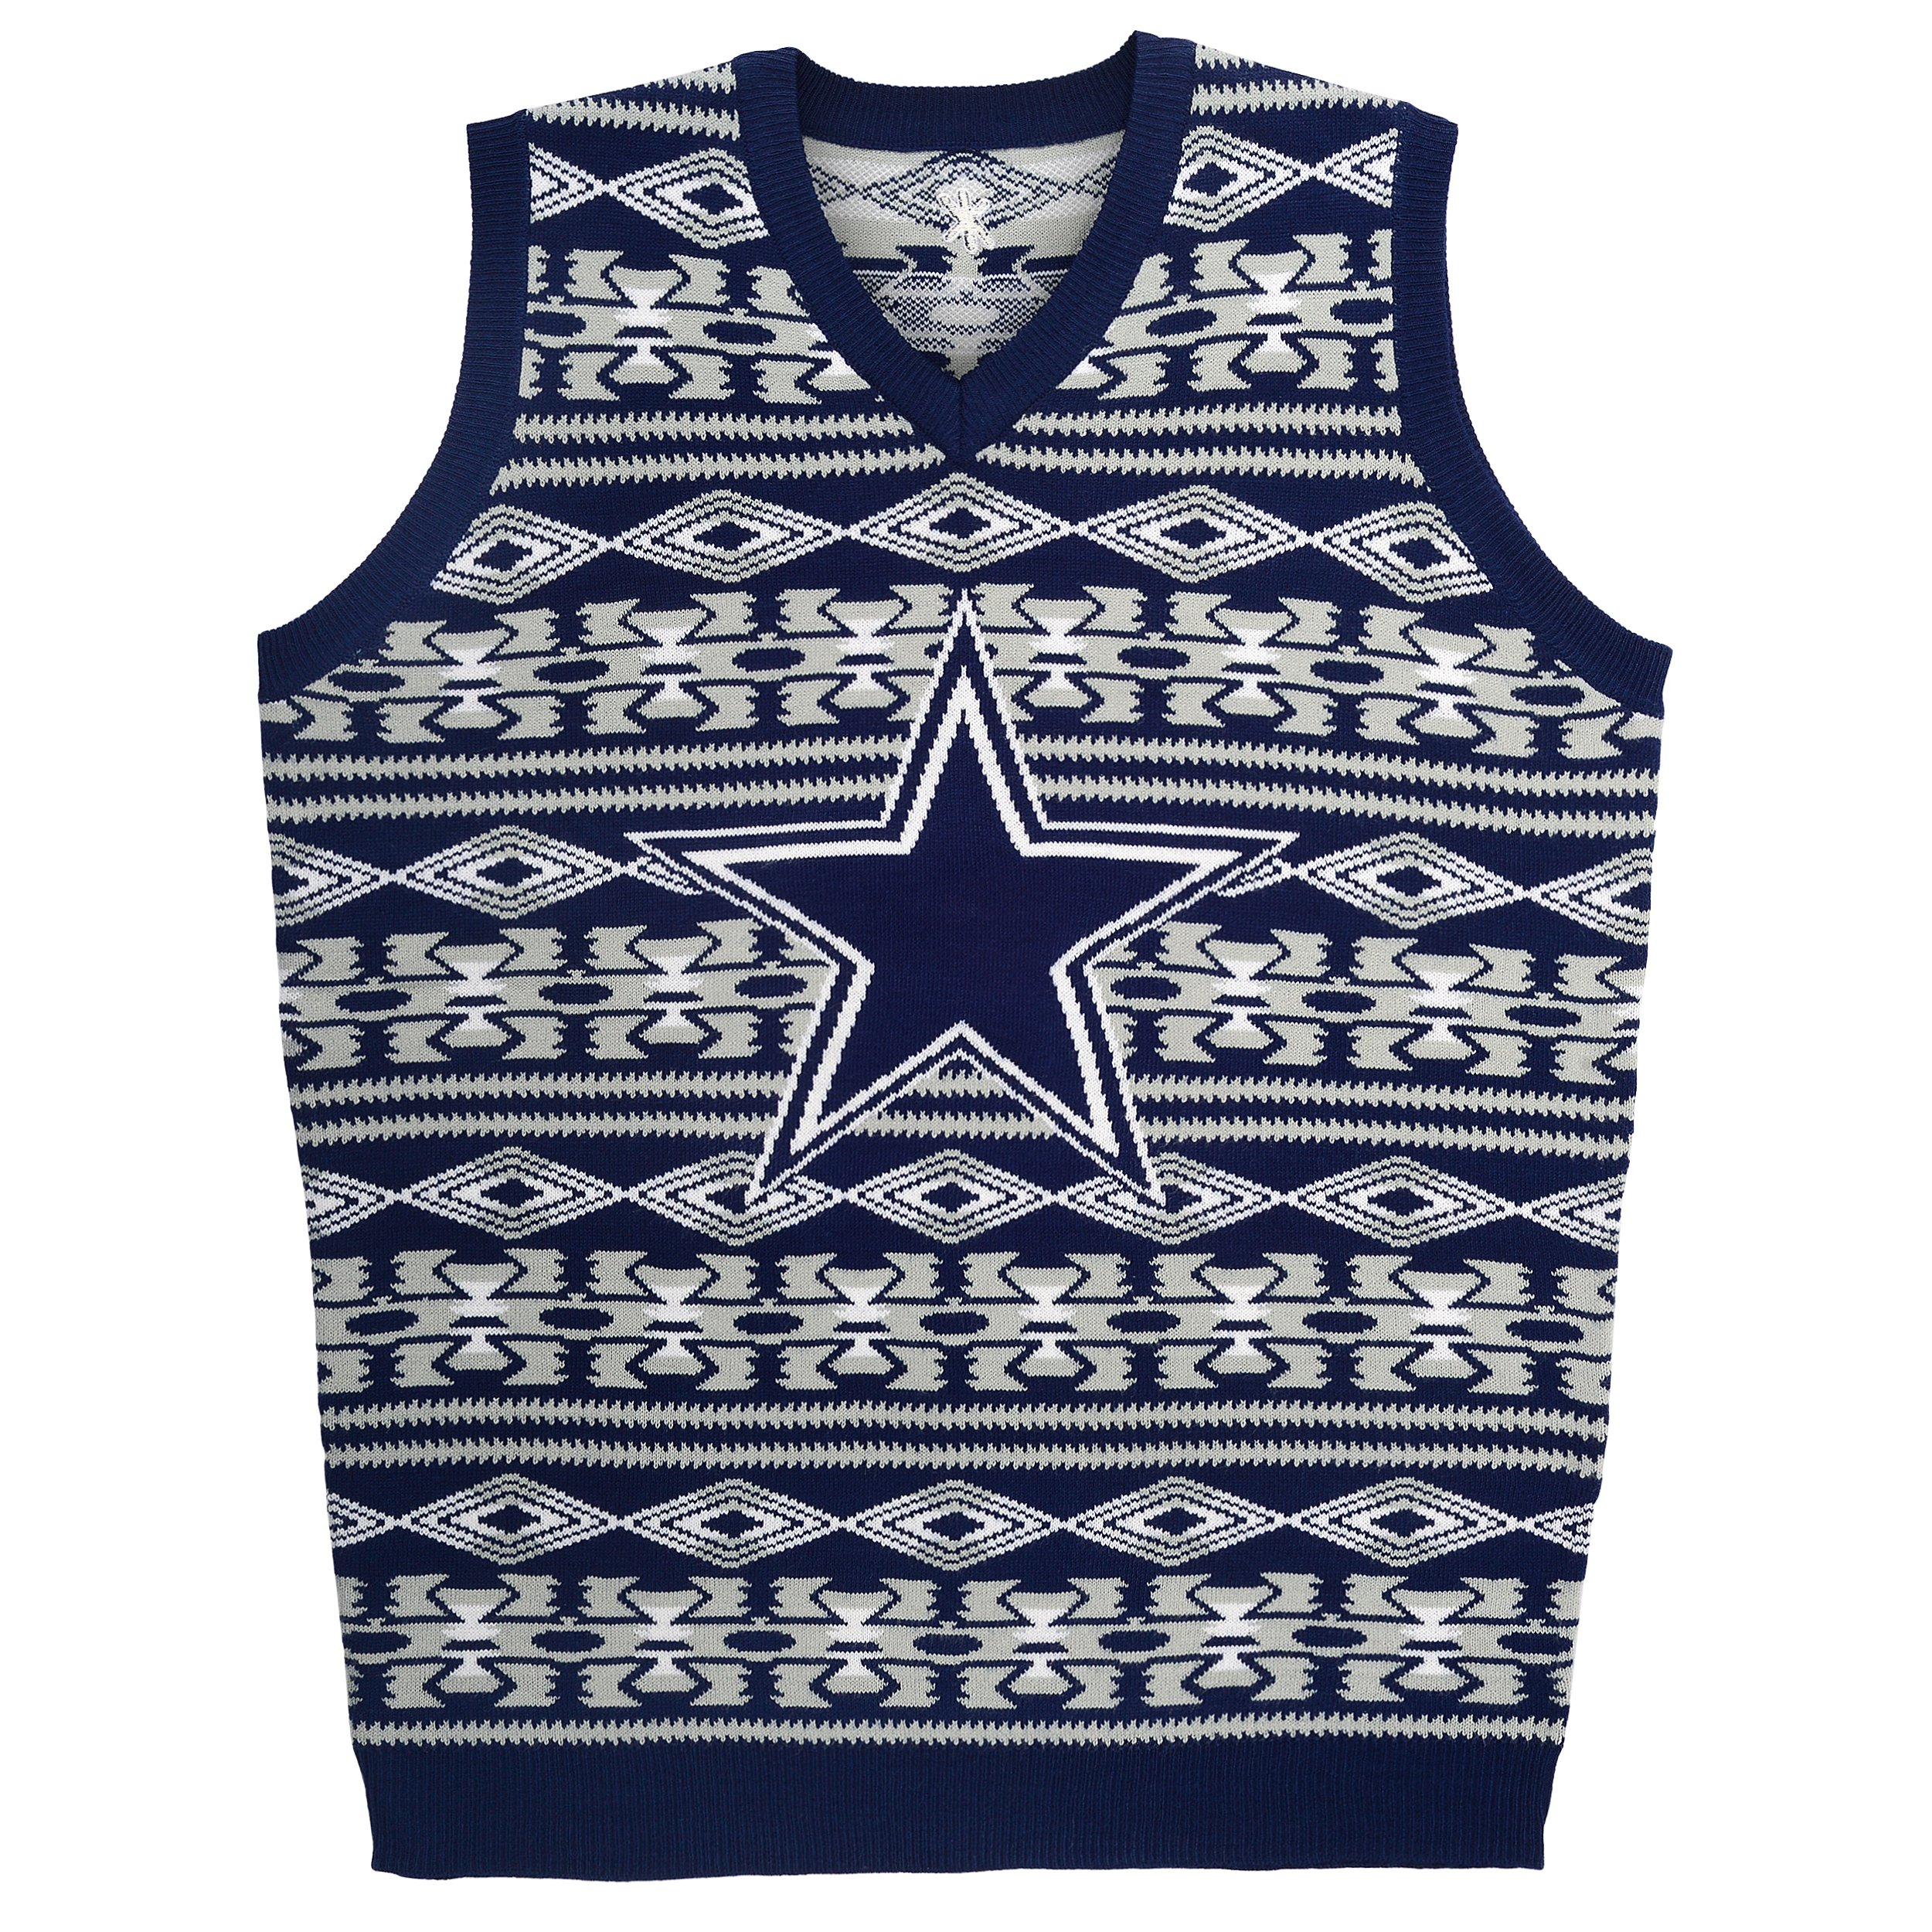 NFL Dallas Cowboys Ugly Sweater, Aztec